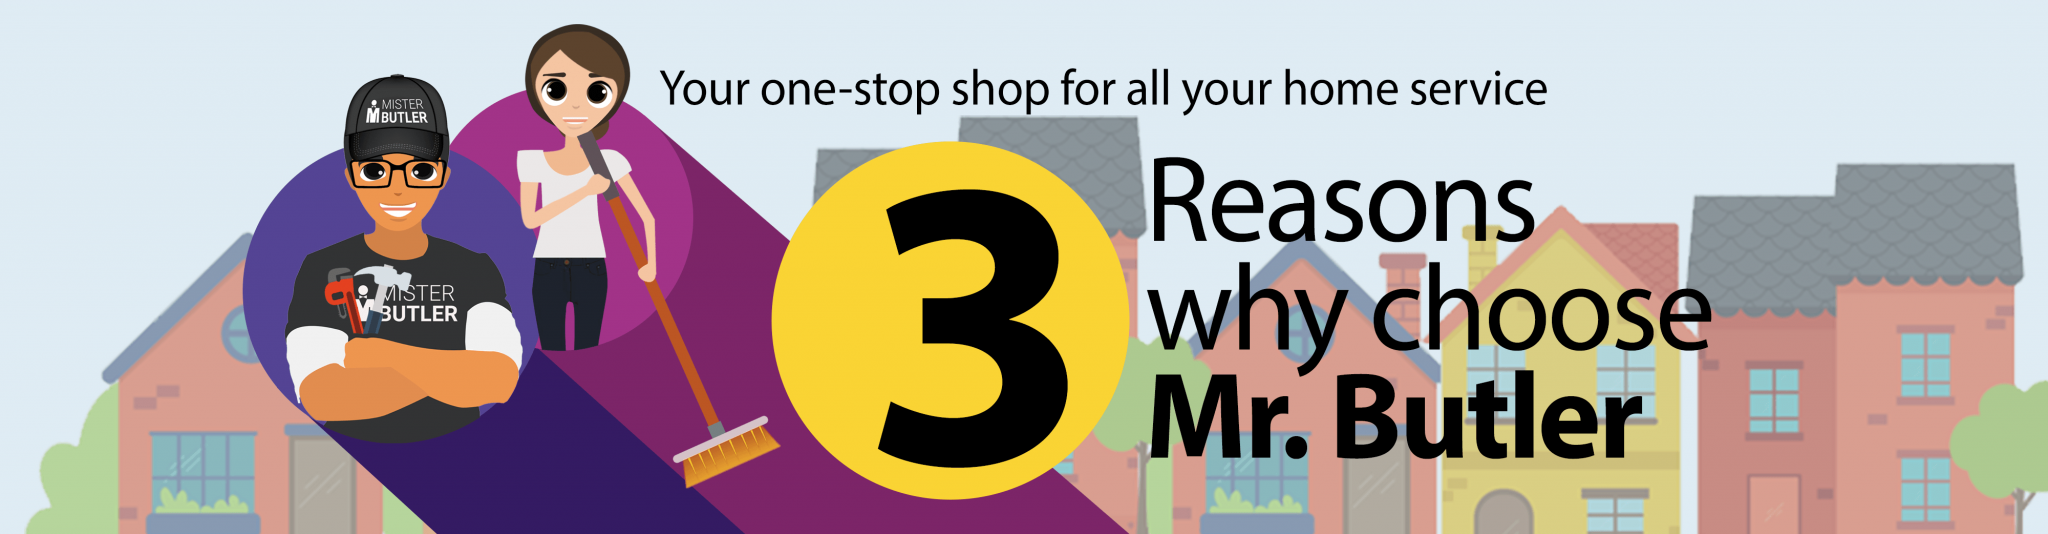 3 Reasons Why Work With Mr. Butler